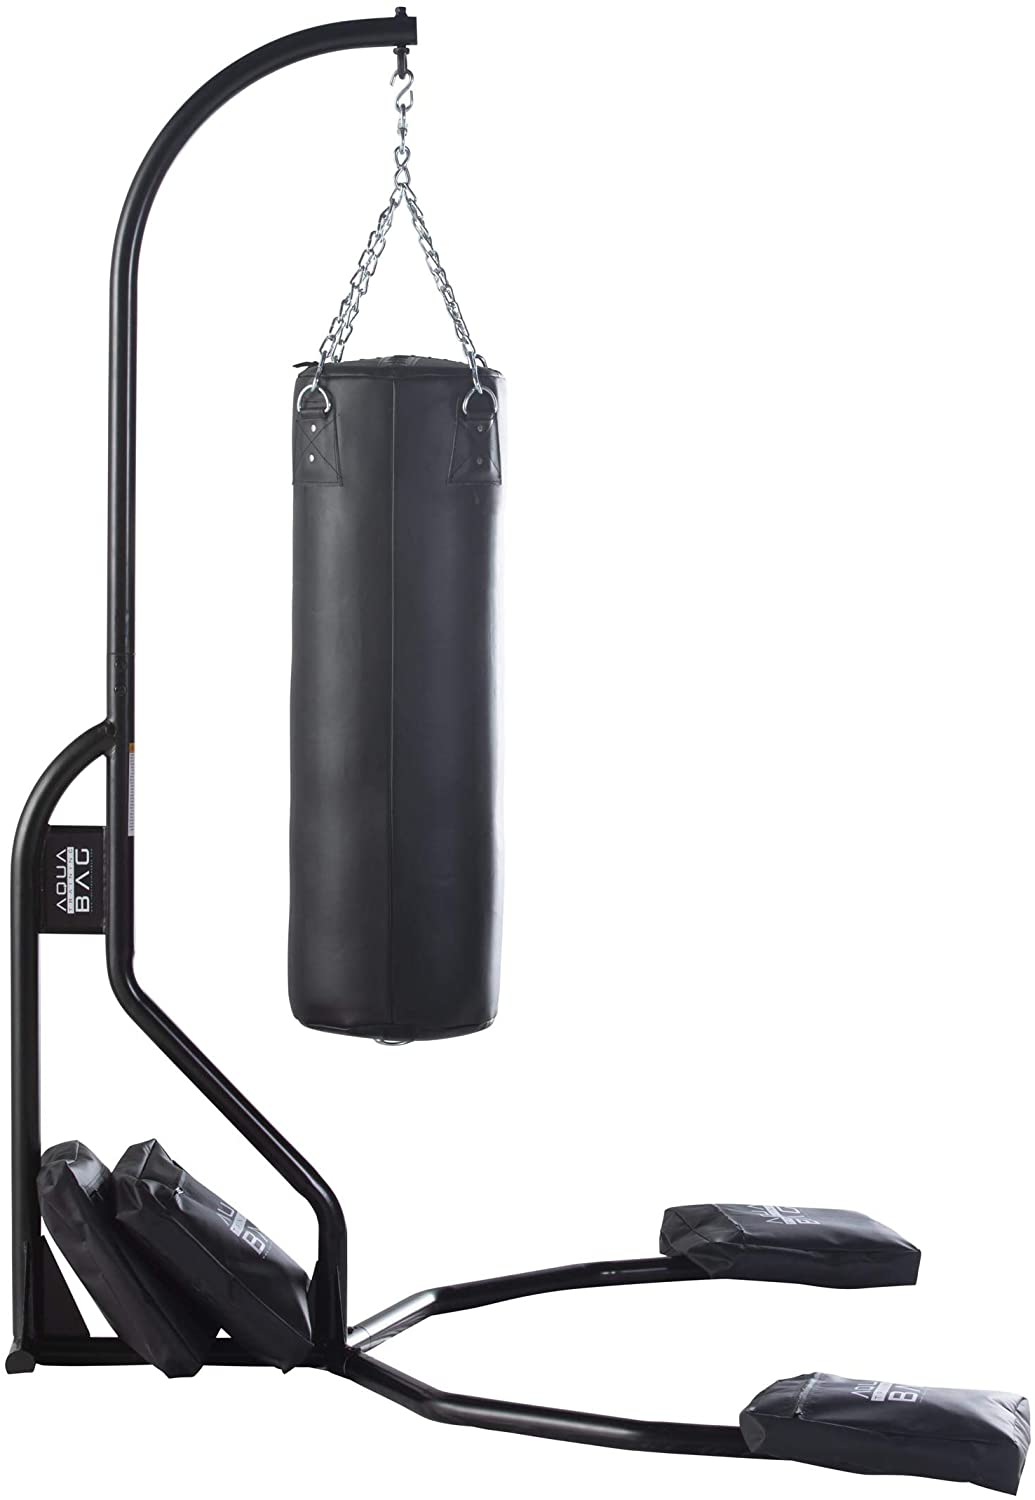 Aqua Punching Bag Stand for 200lbs Punching Bag